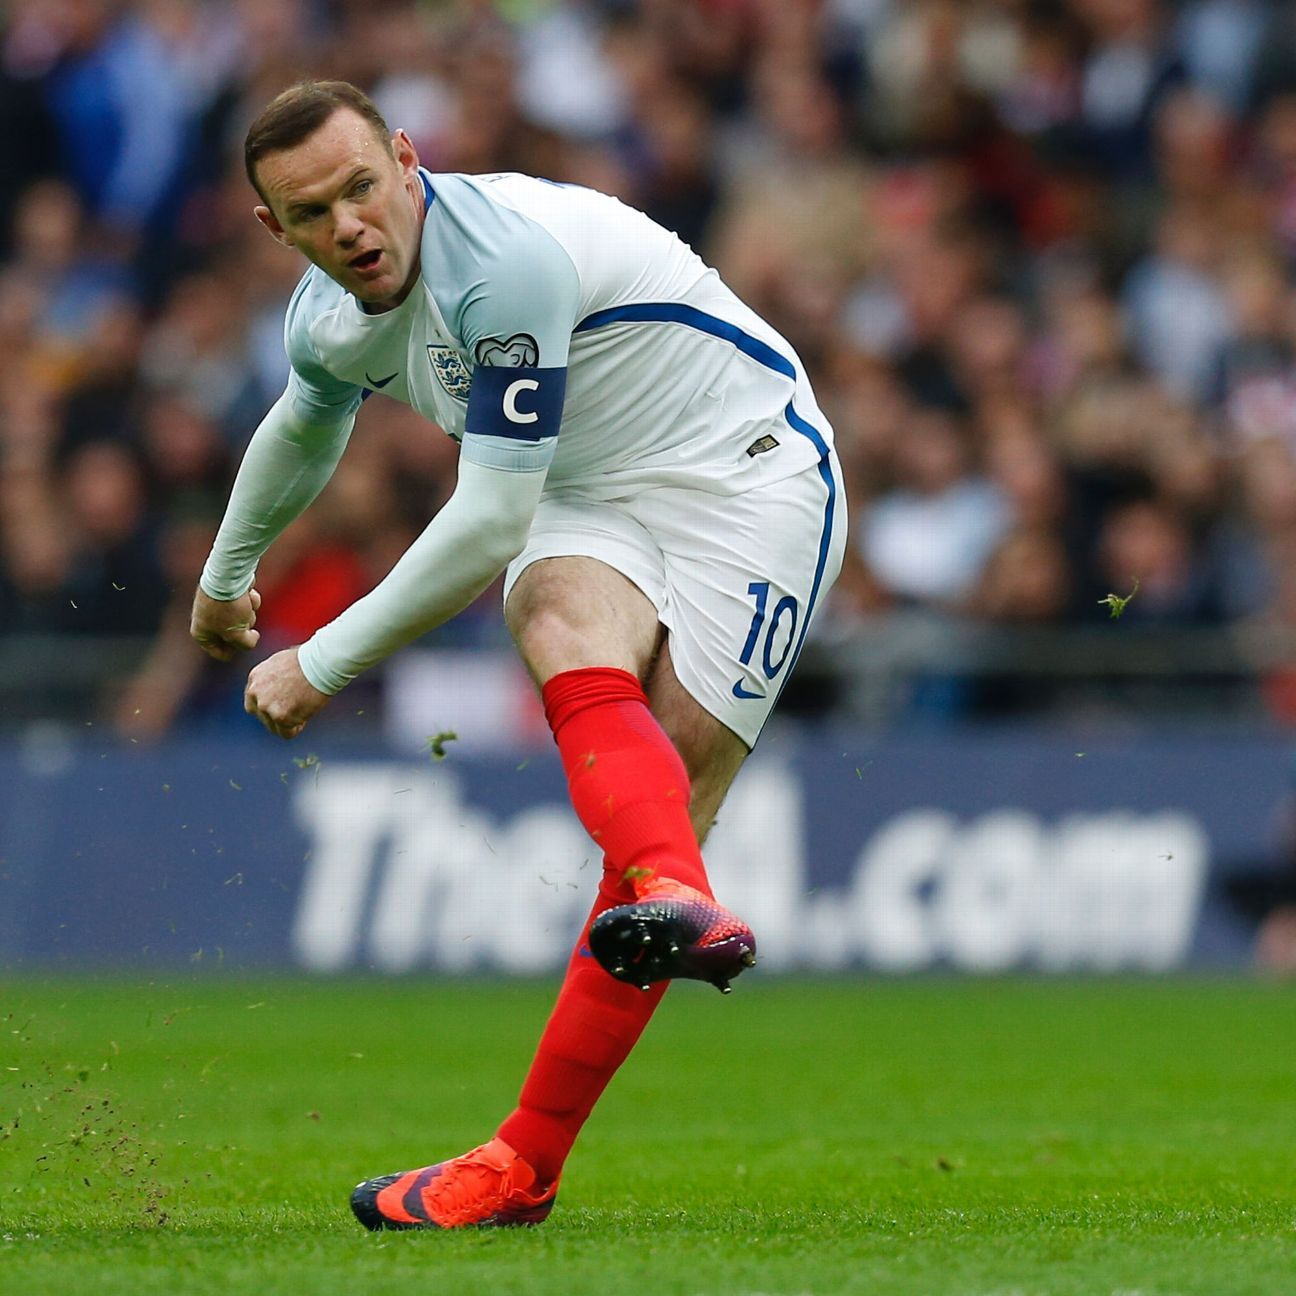 England's captain Wayne Rooney is unsuccessful with this freekick during the World Cup 2018 football qualification match between England and Malta at Wembley Stadium in London on October 8, 2016.